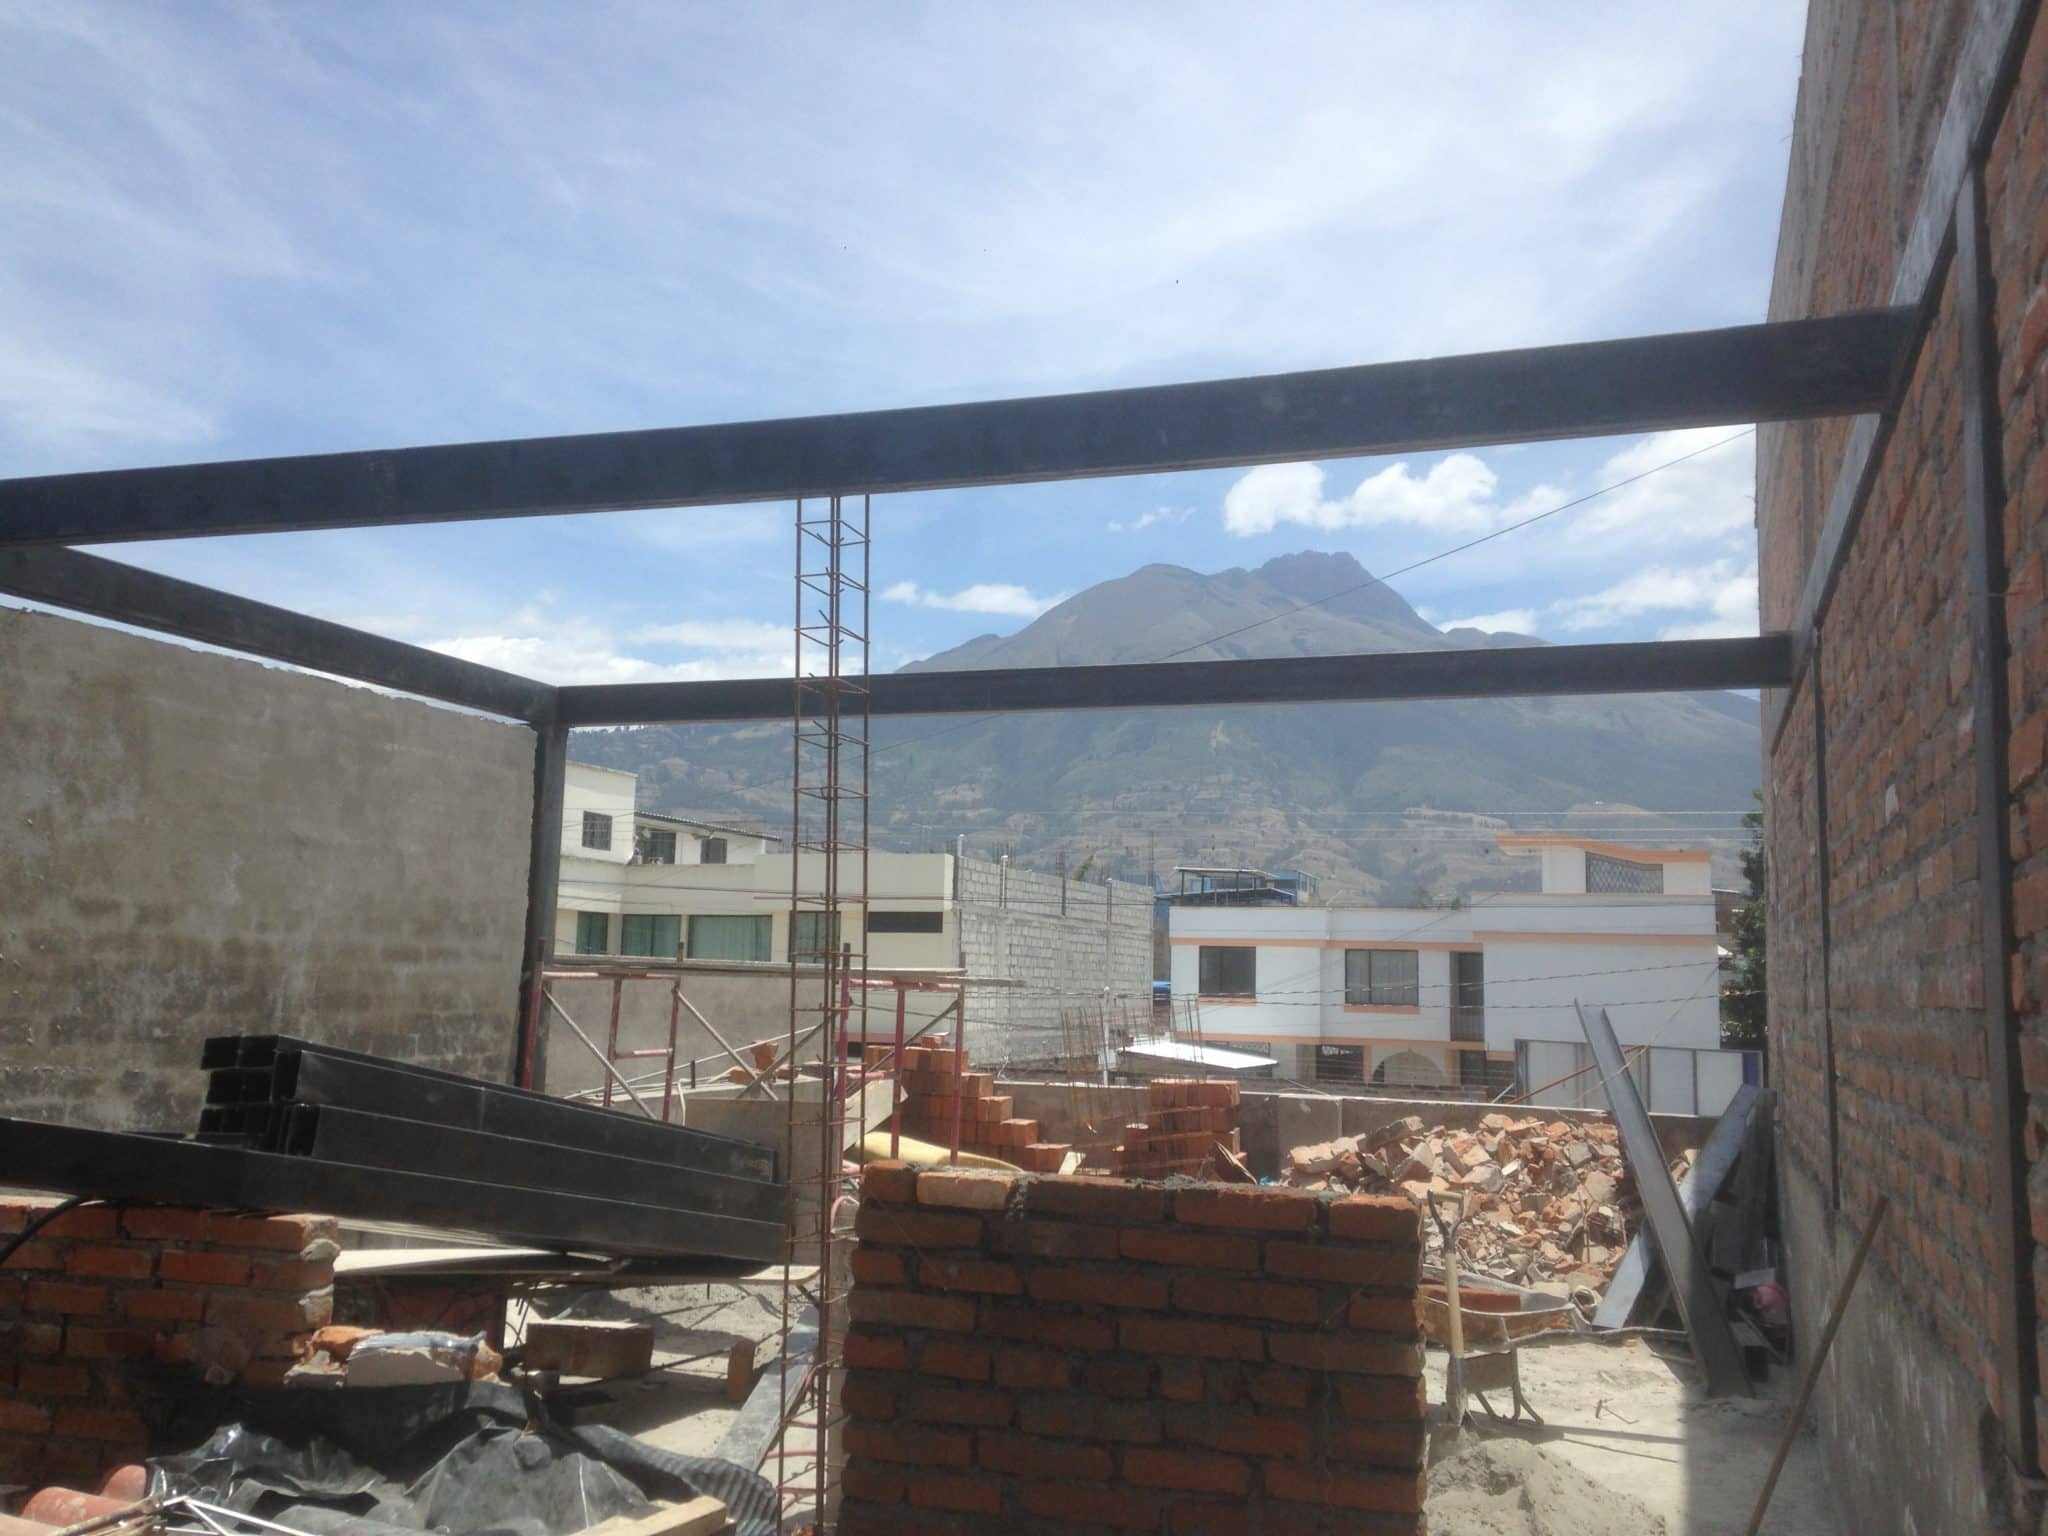 view of Cayambe from second floor